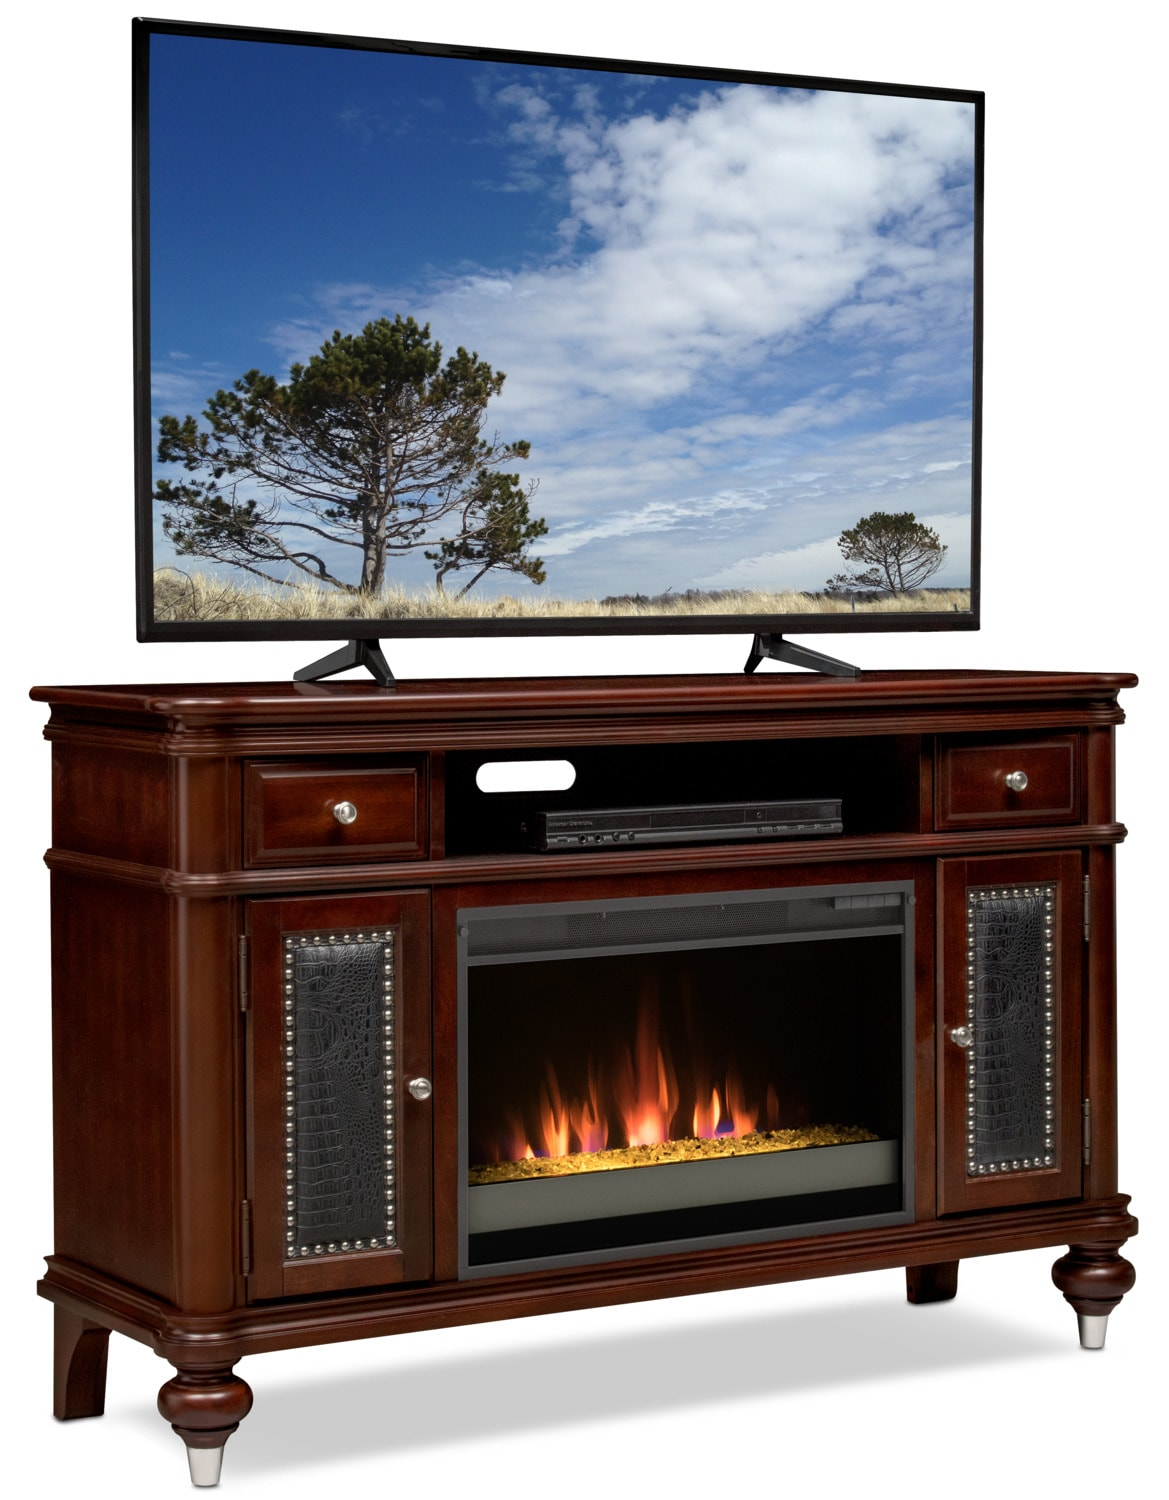 esquire 55 contemporary fireplace tv stand merlot value city furniture and mattresses. Black Bedroom Furniture Sets. Home Design Ideas